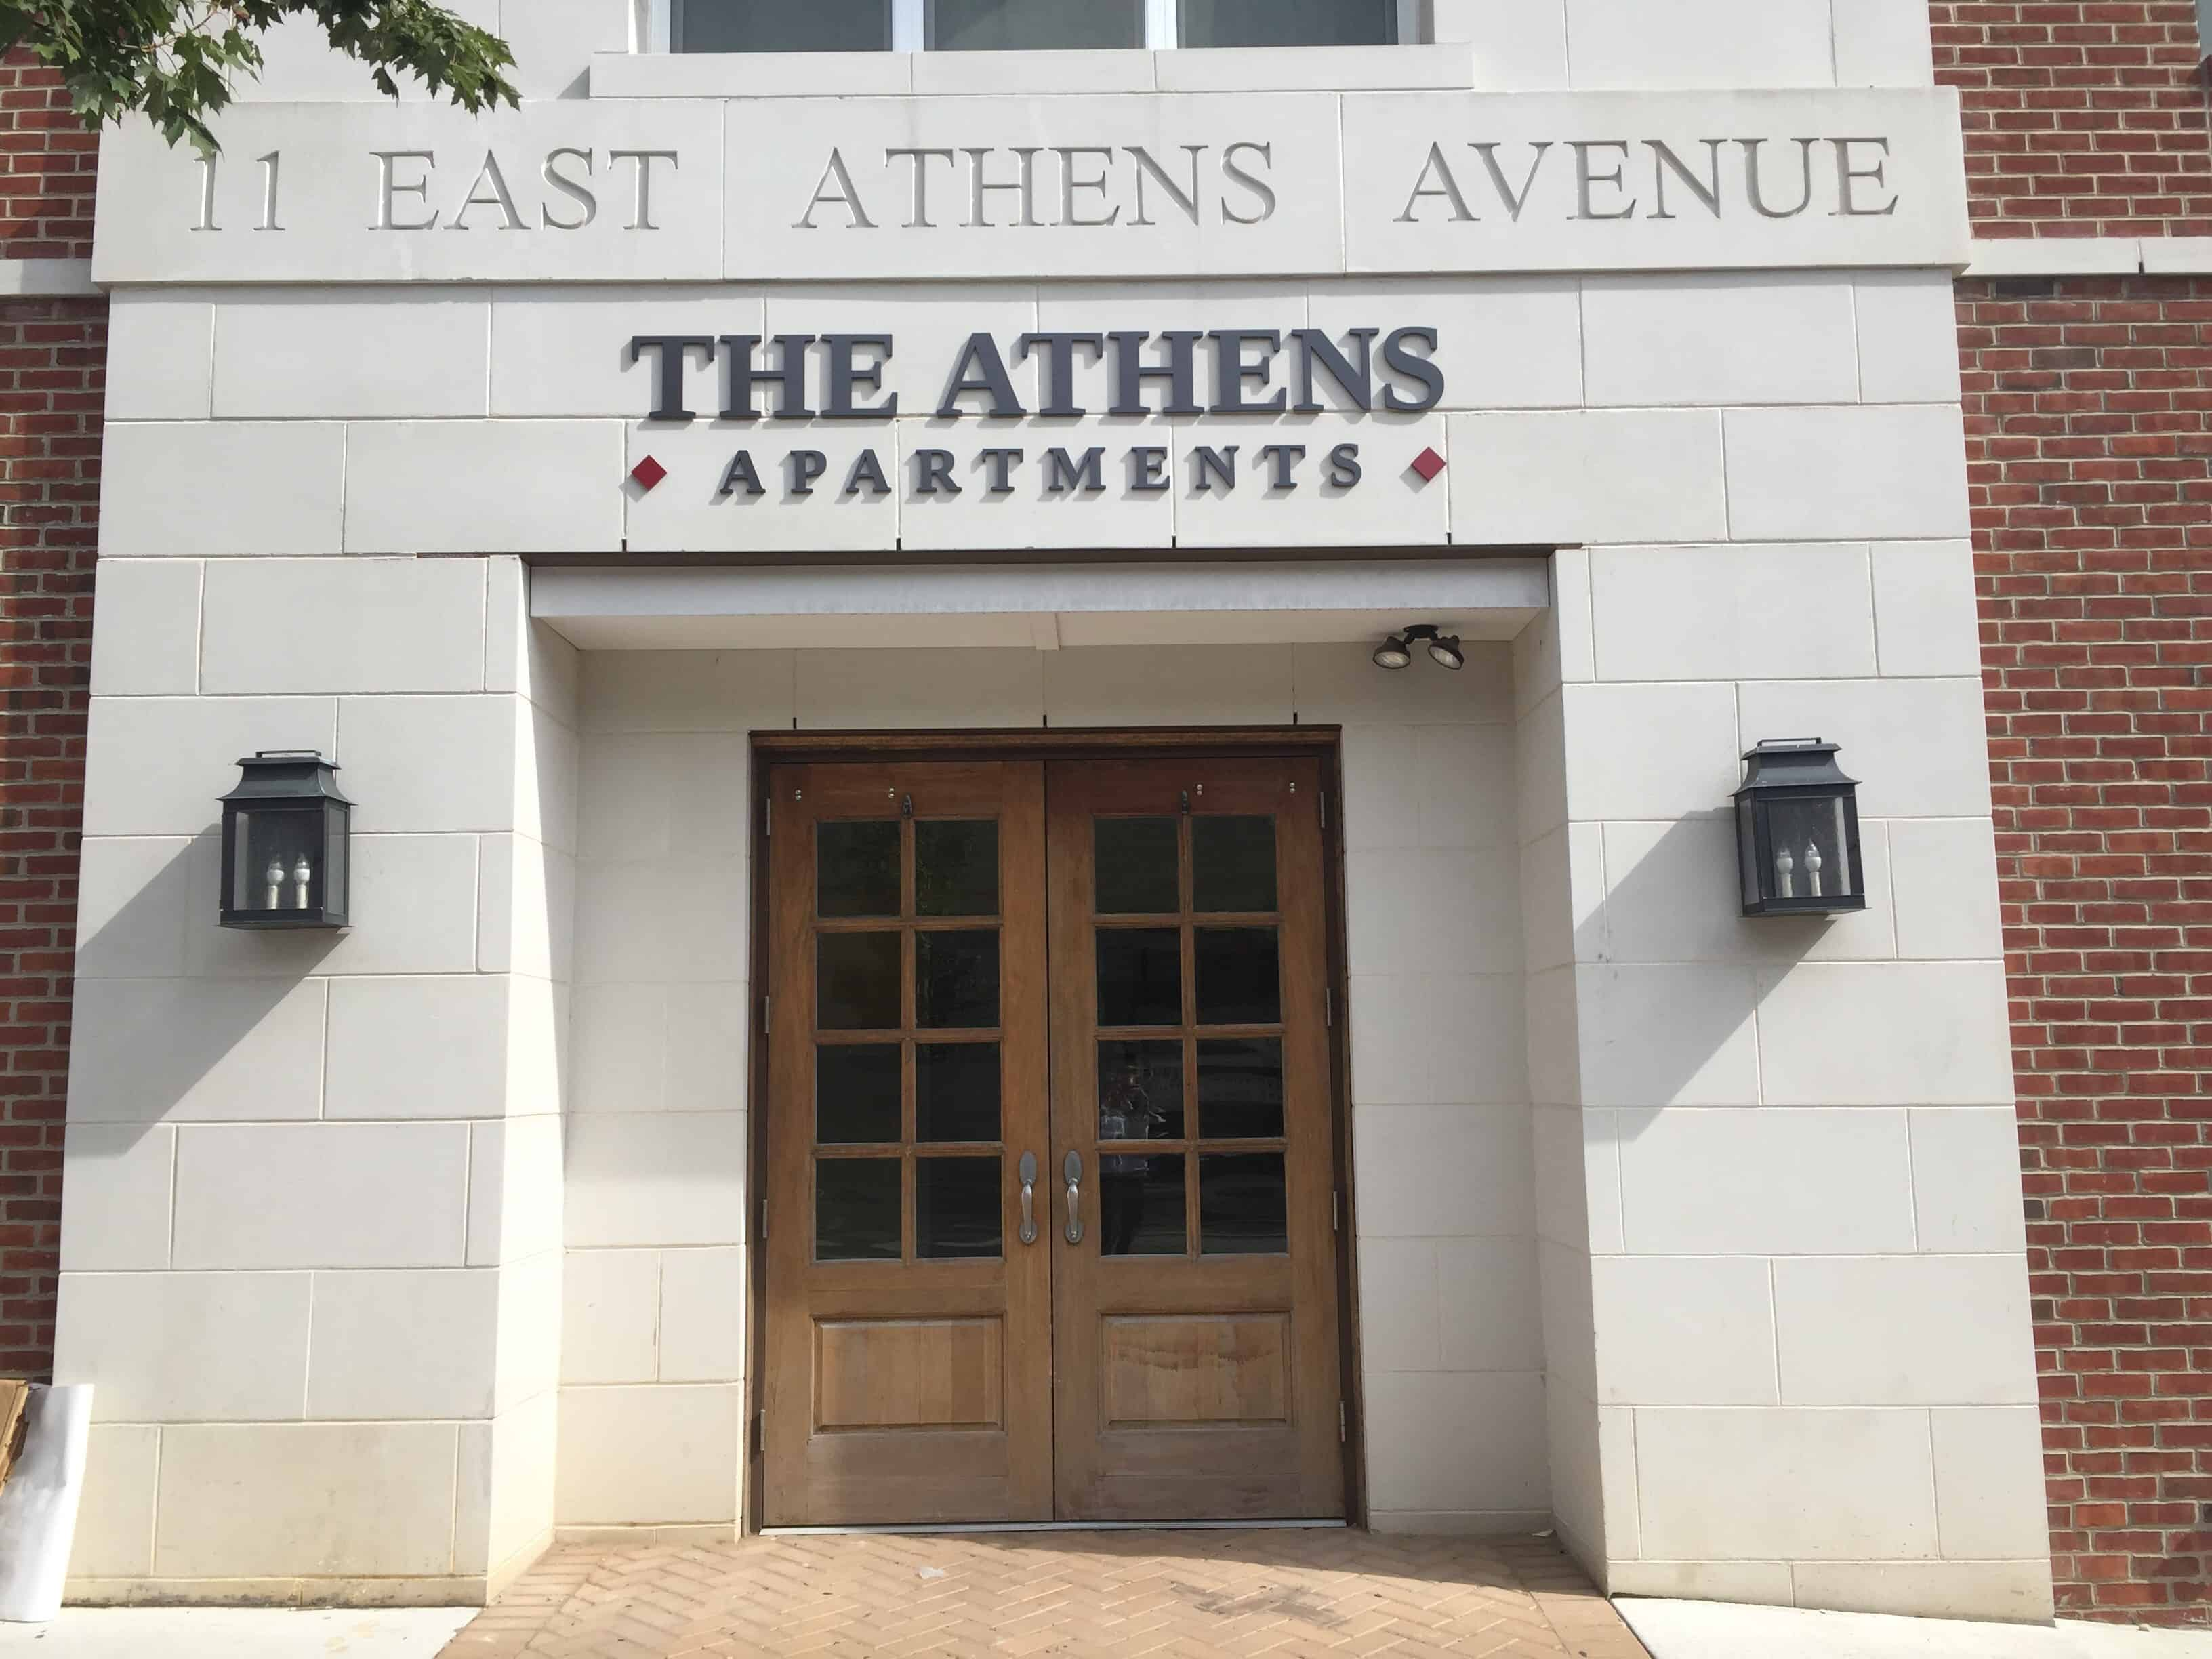 Introducing The Athens, The Newest Berger Rental Community